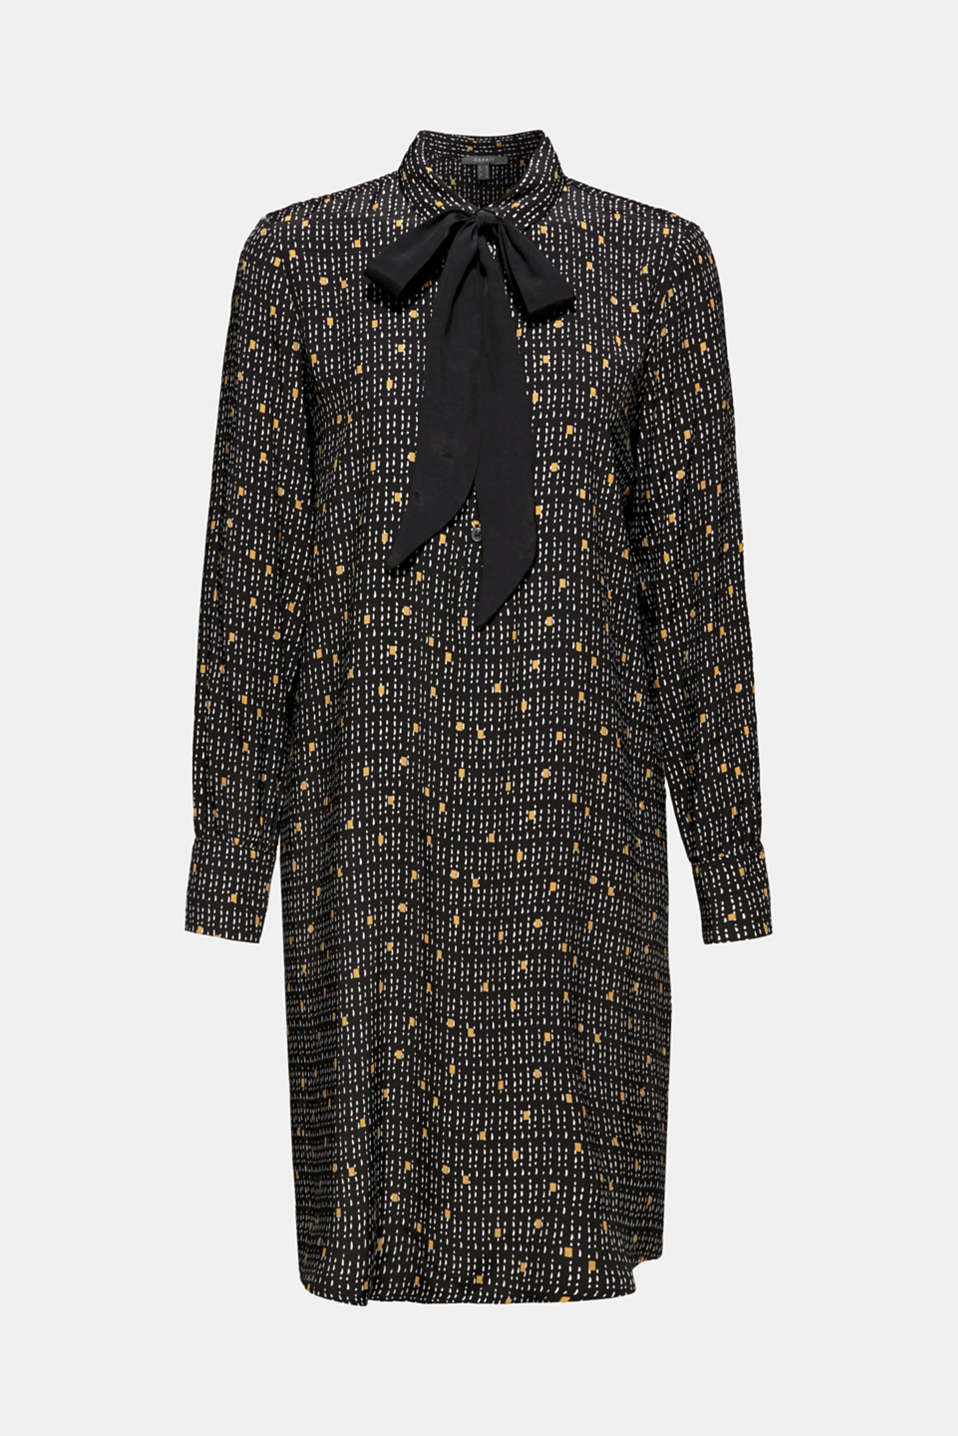 Patterned shirt dress with a pussycat bow, BLACK, detail image number 7